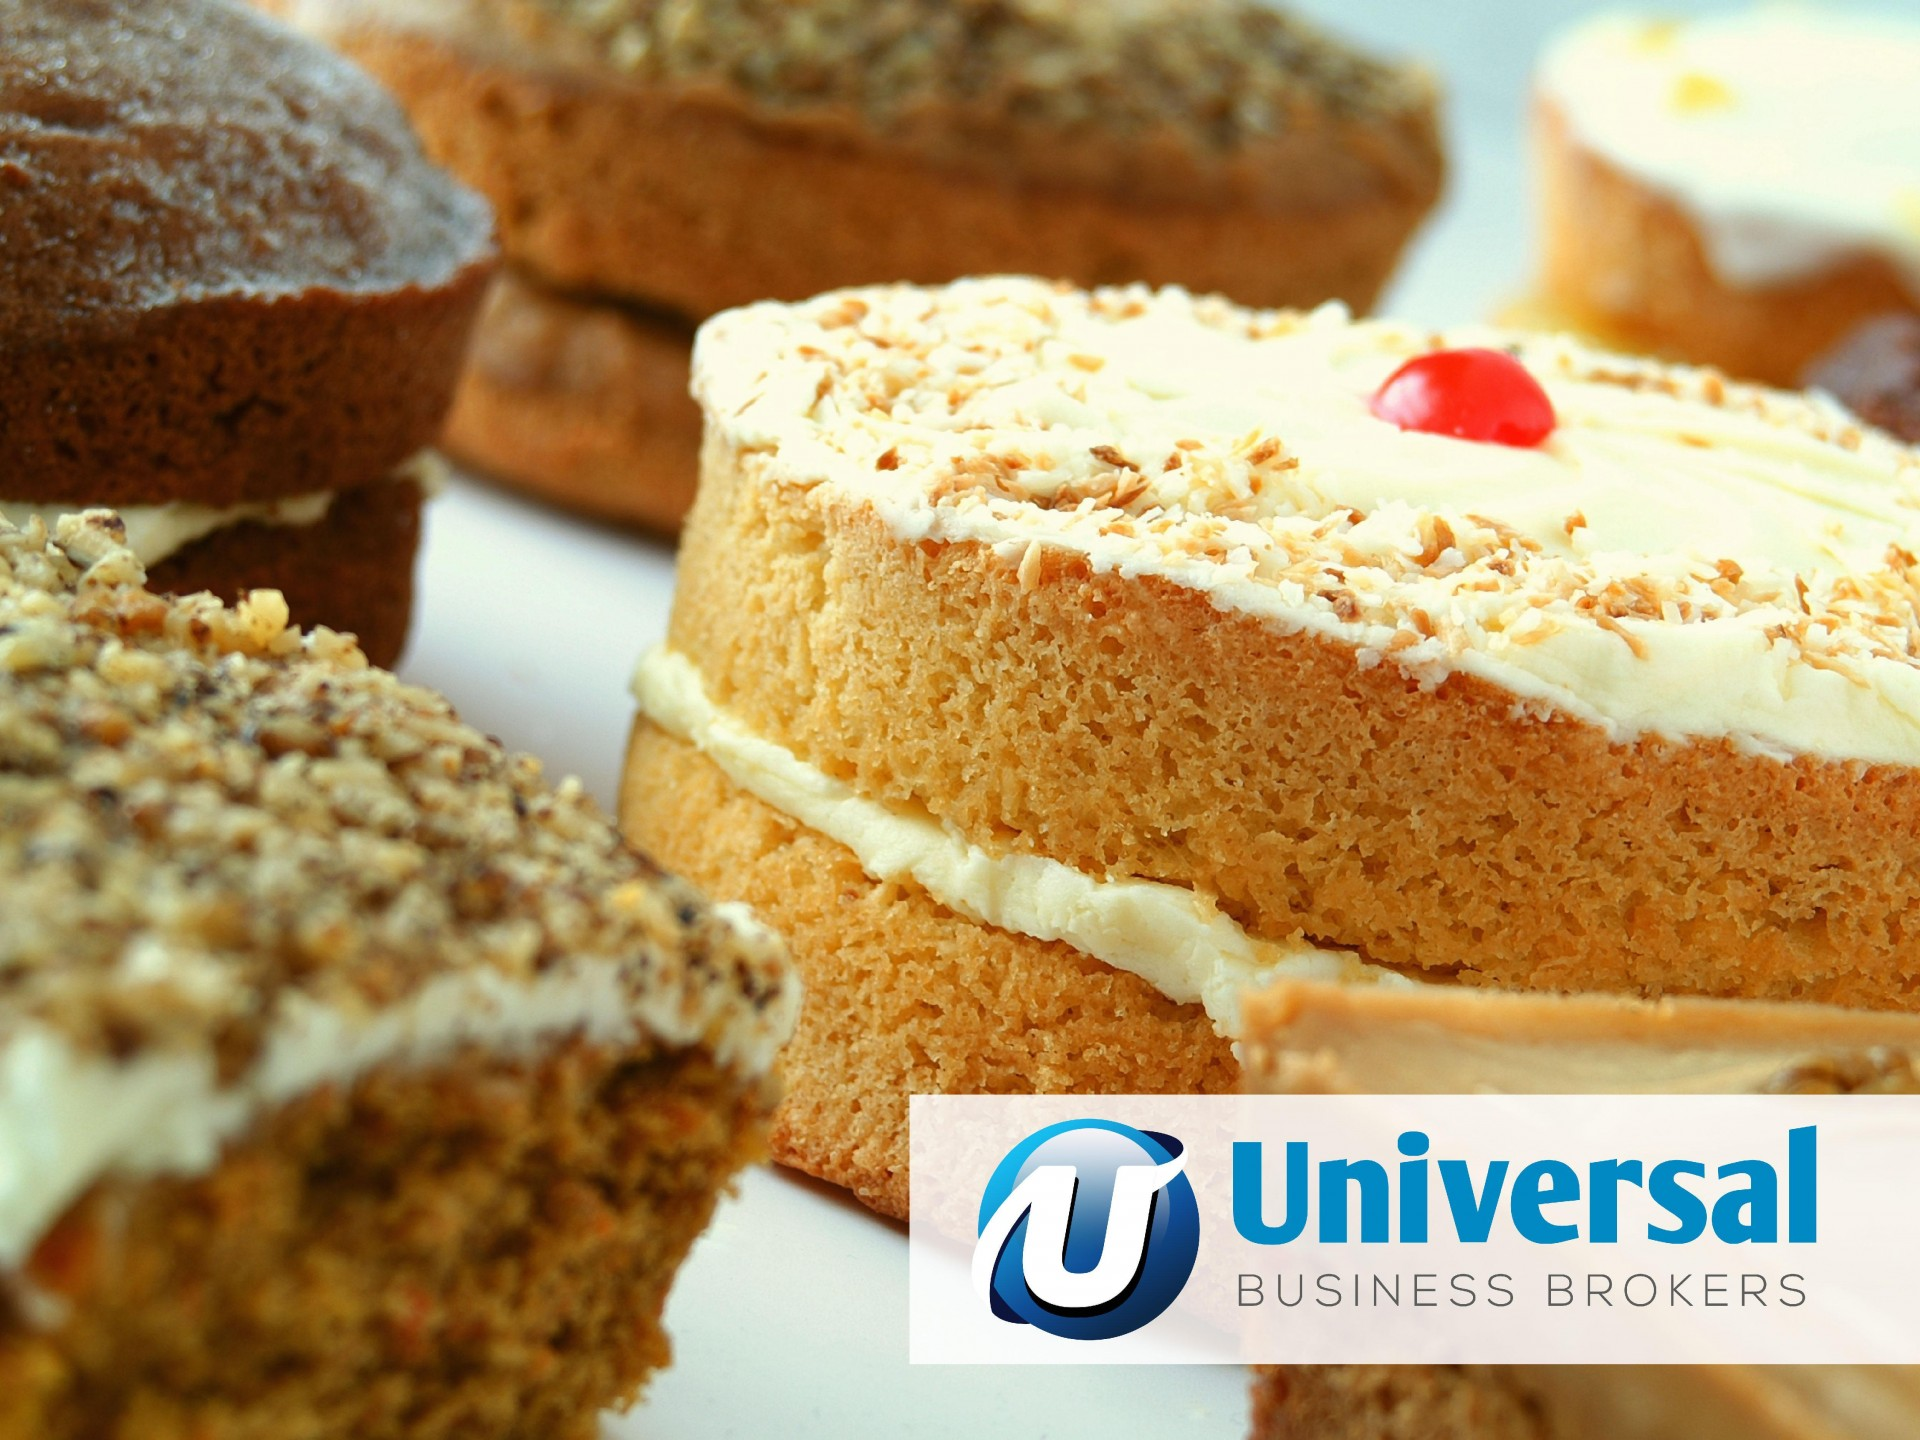 Cake and Pie Shop Business for Sale Sydney